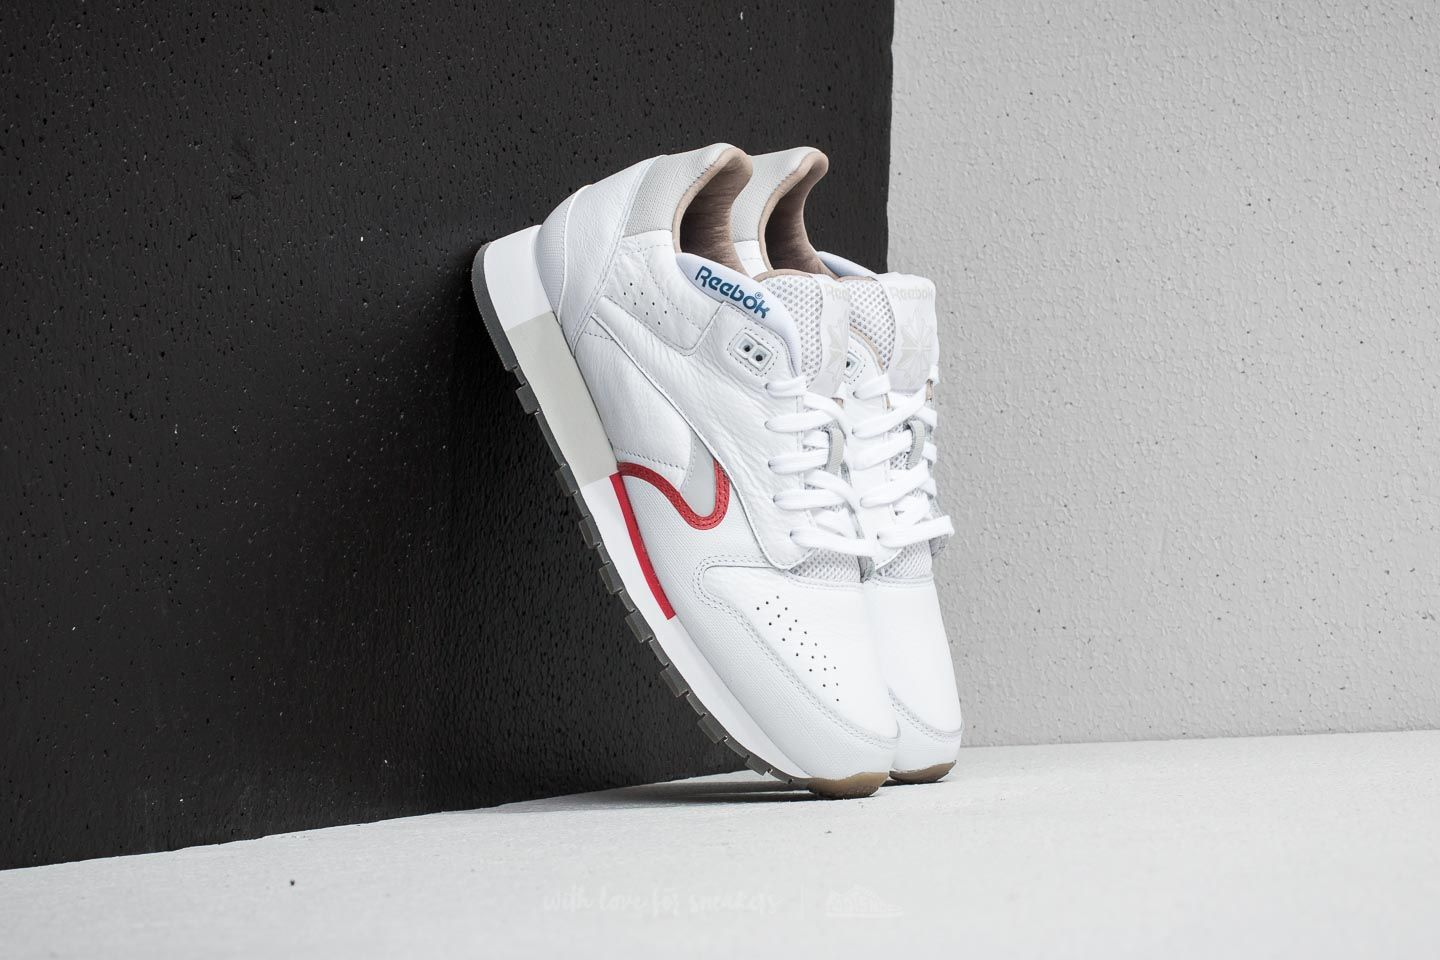 20030e3c3f Reebok Classic Leather Urge White/ Cool Grey/ Red/ Blue nagyszerű árakon 25  779